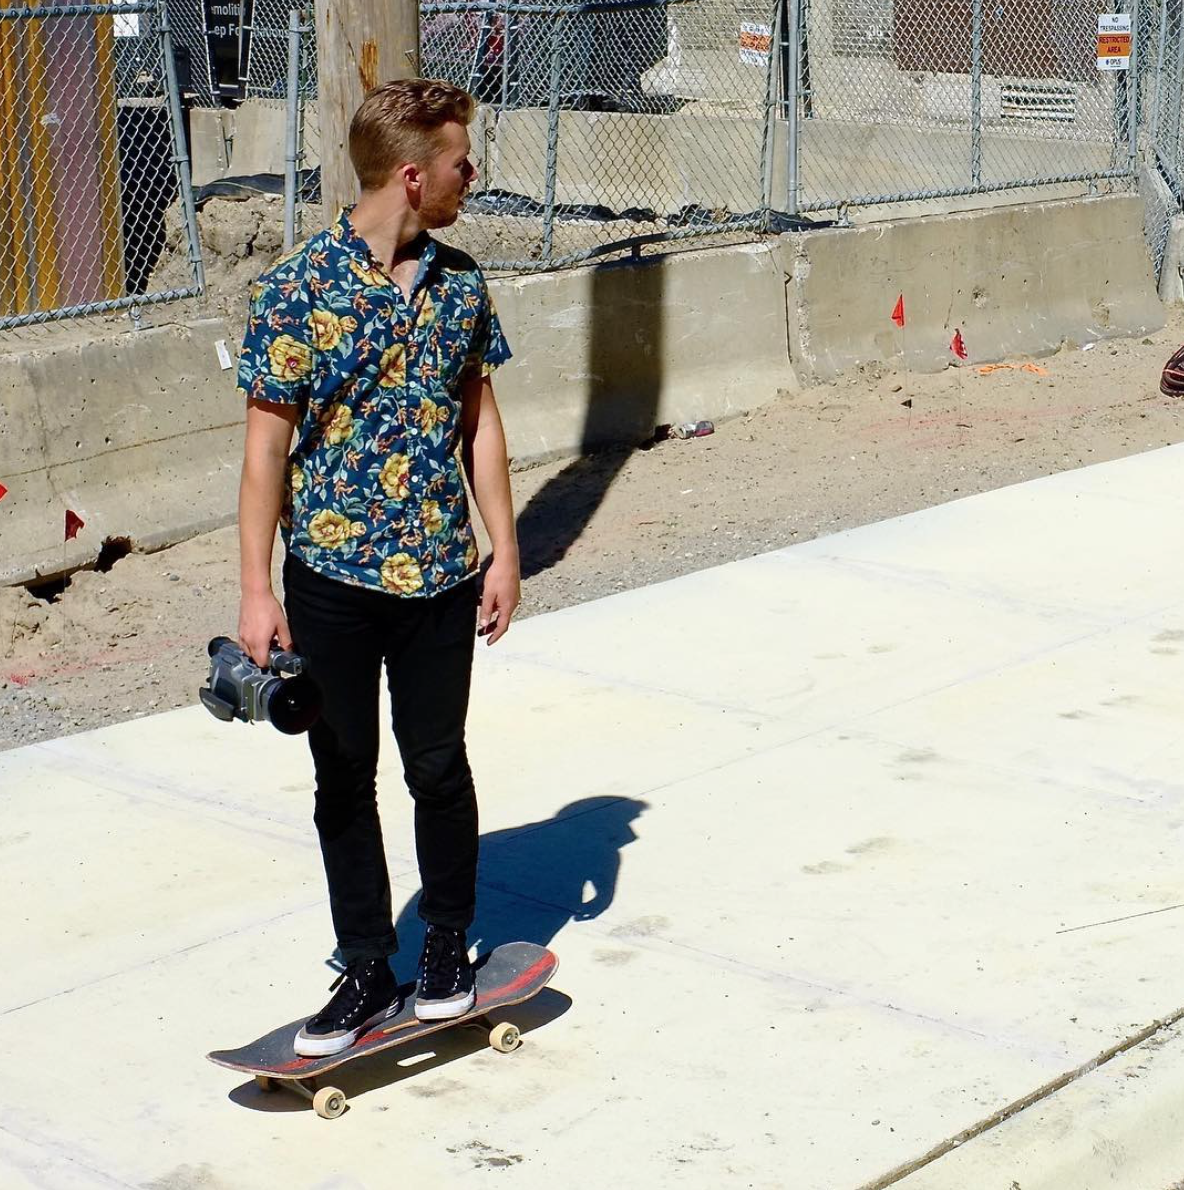 It's nice to see Kevin back on a skateboard, especially with a camera in hand.